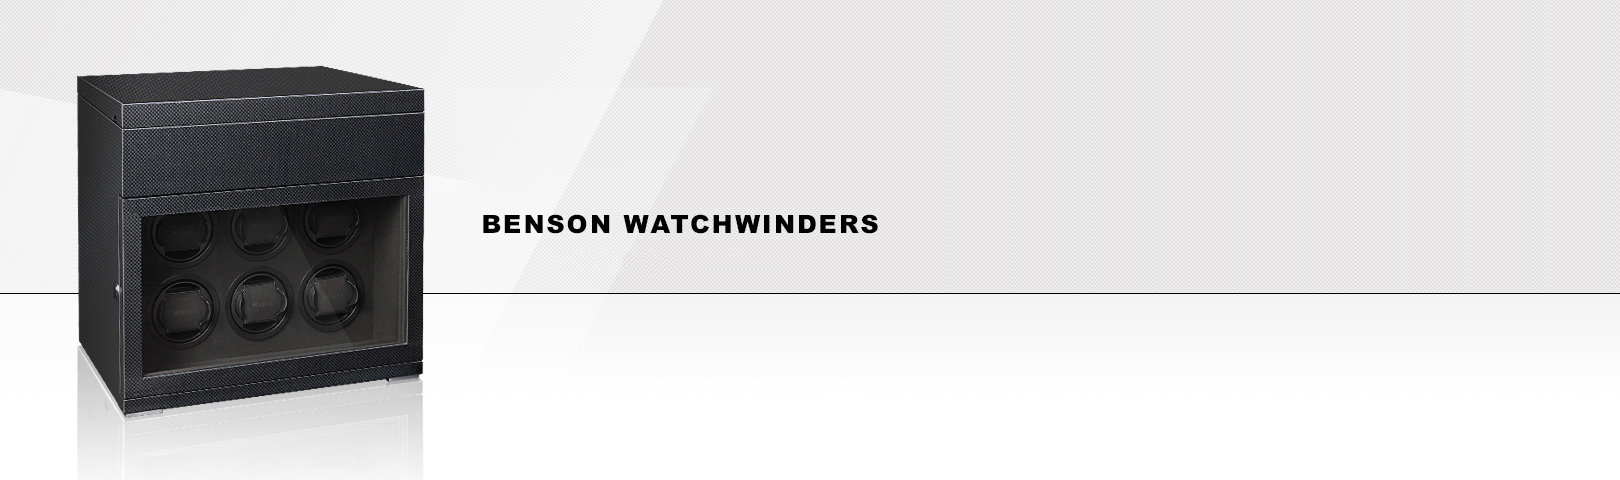 benson watch winders